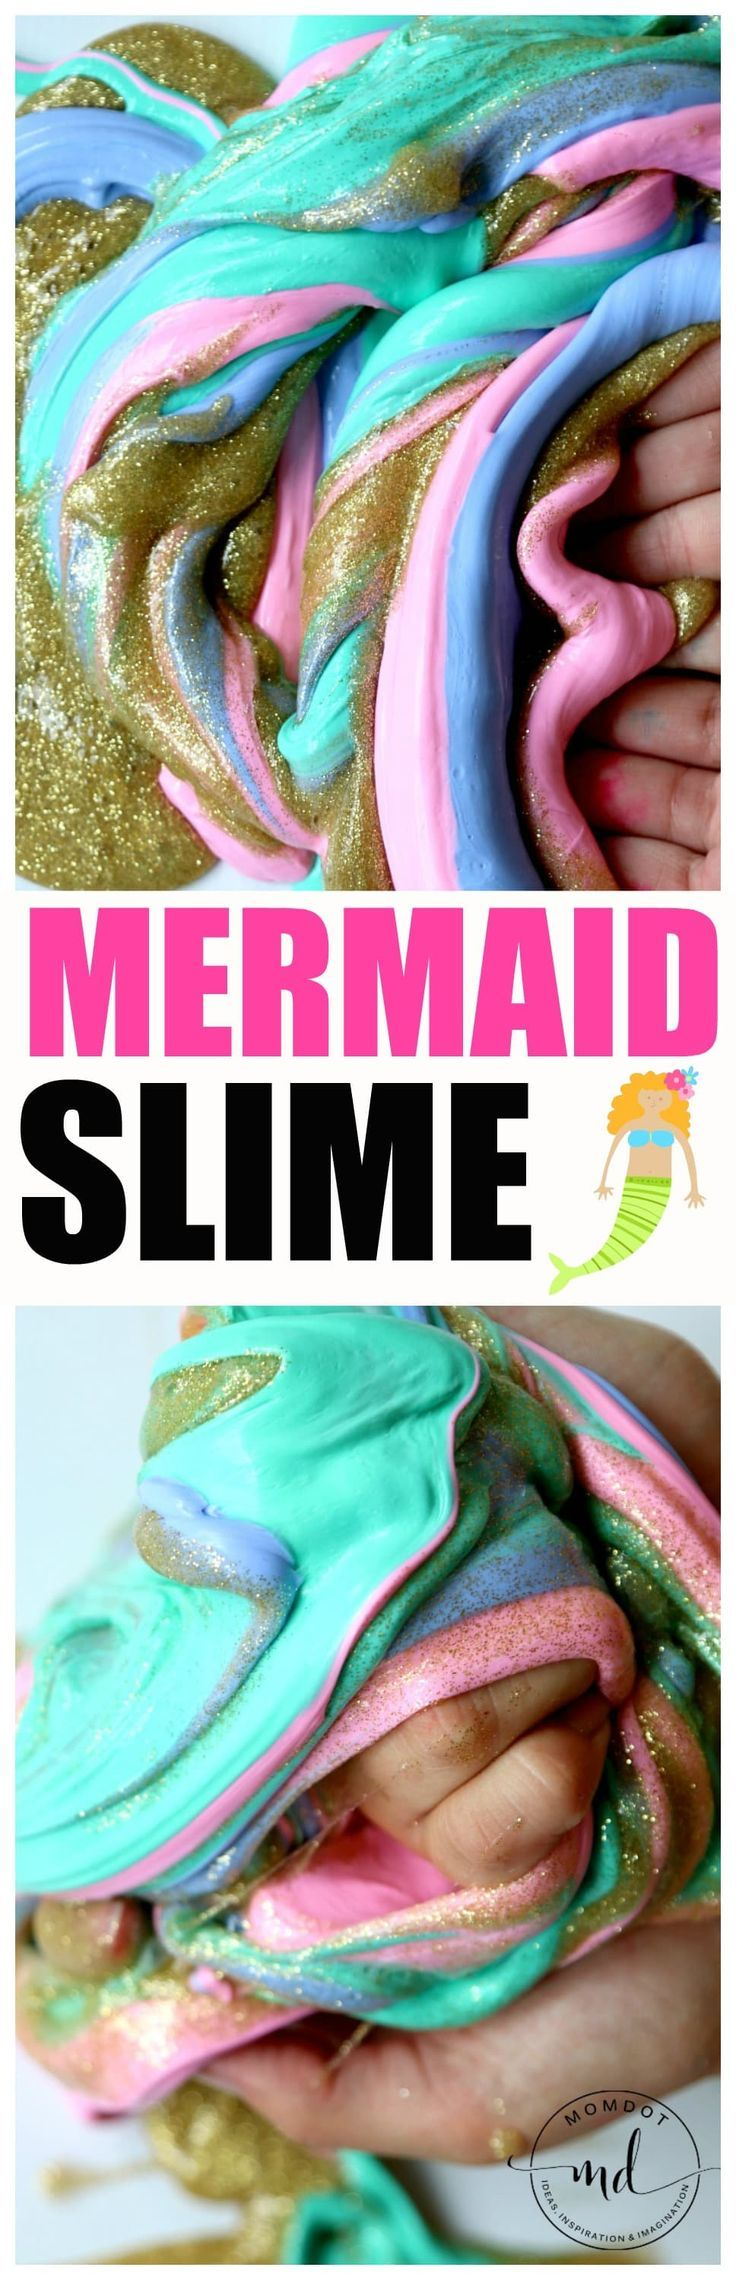 Mermaid fluffy slime is a blast to make. Get this mermaid fluffy slime recipe in colors of sea green, purple, and pinks,coming alive with gold glitter